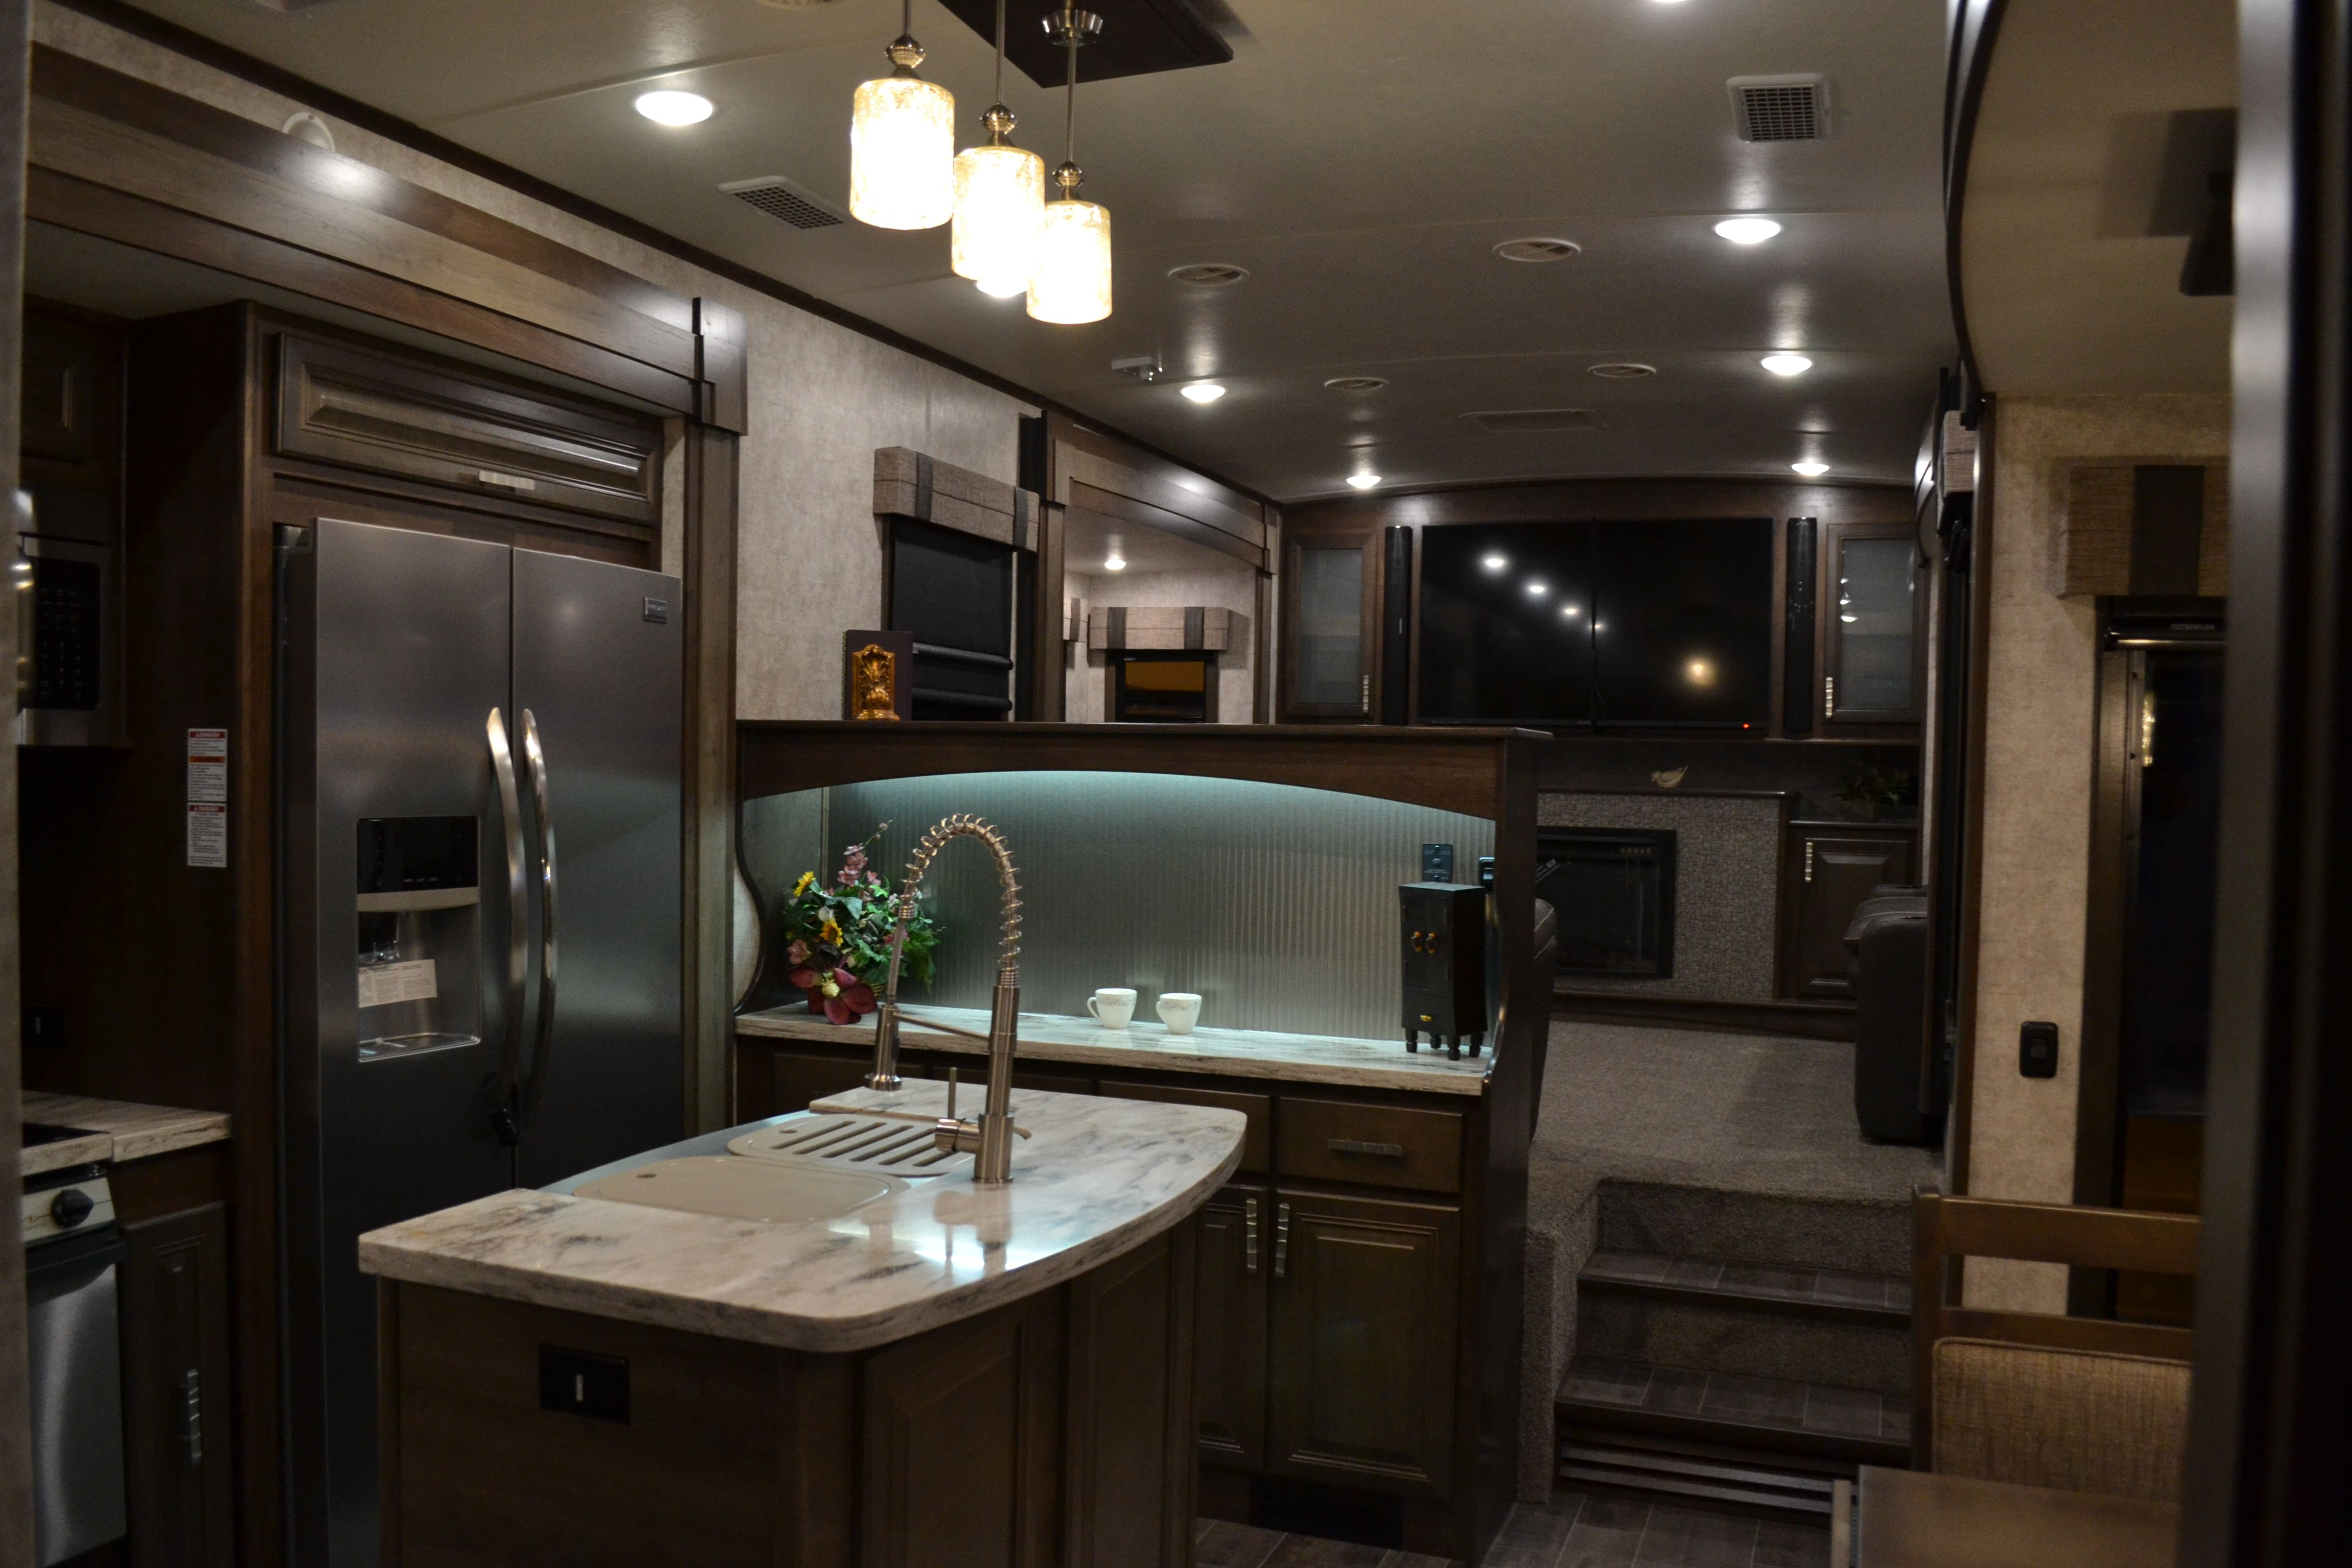 2017 Open Range 3x 387rbs Front Living Room 5th Wheel With King